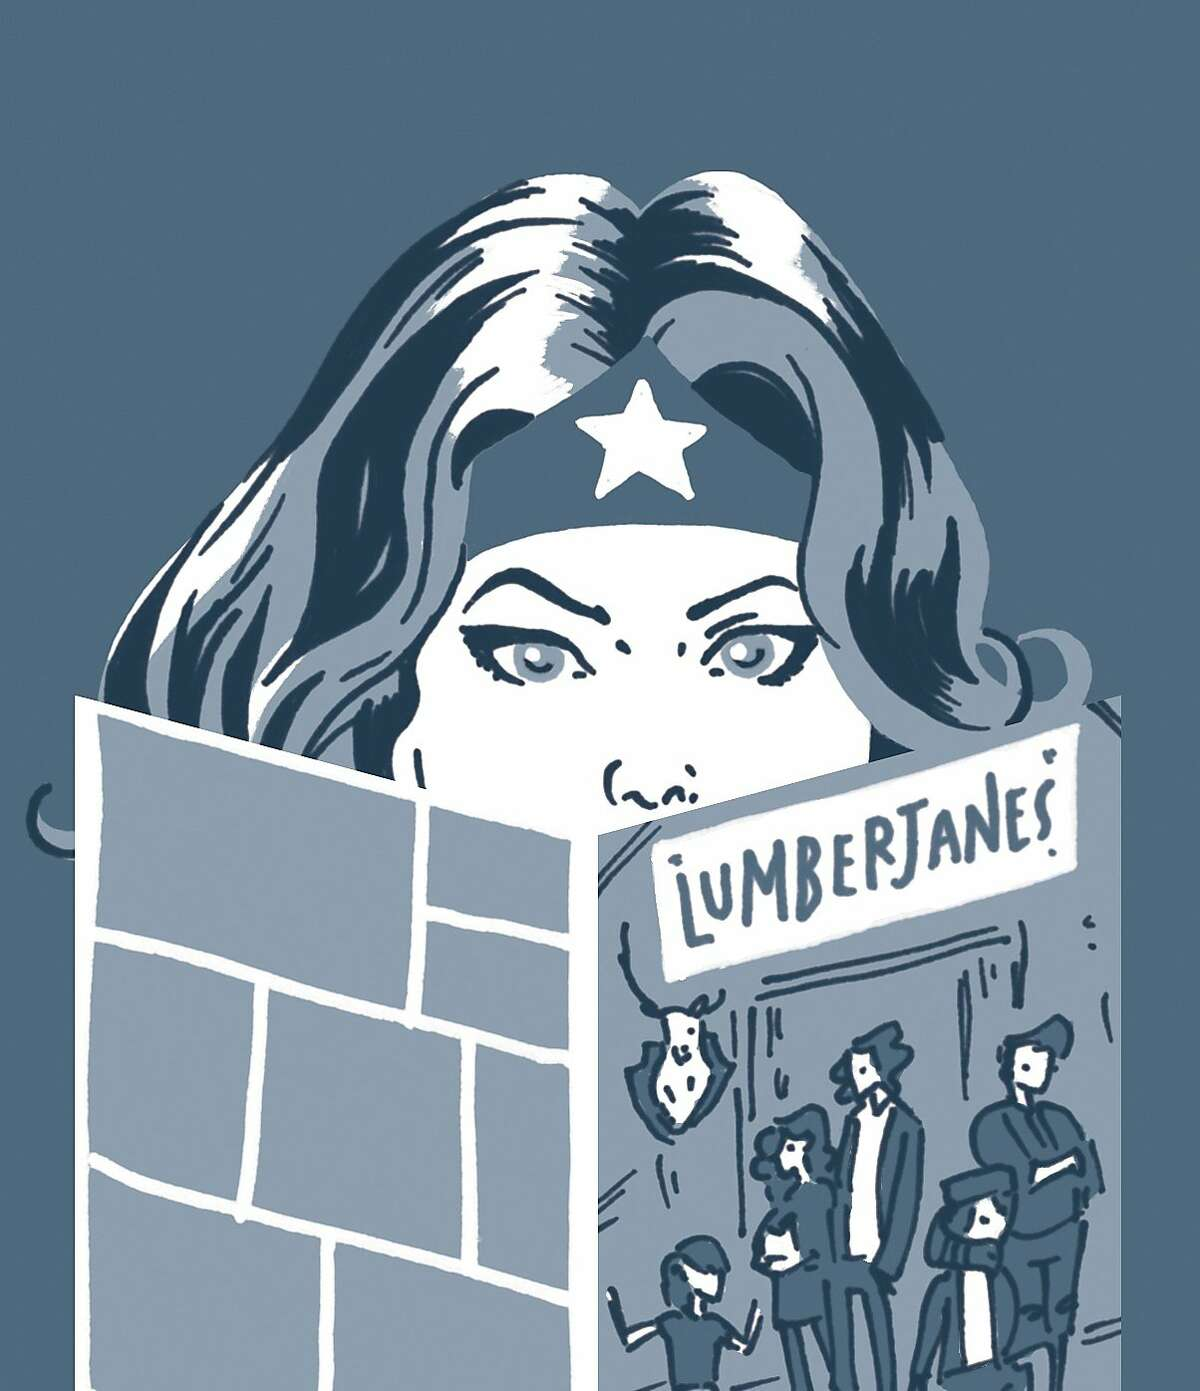 Wonder Woman - It seems appropriate for Wonder Woman, often seen as a feminist icon, to be reading Lumberjanes, a recently launched comic about a group of teenage girls battling supernatural creatures and solving mysteries that's written, illustrated, and edited by women.